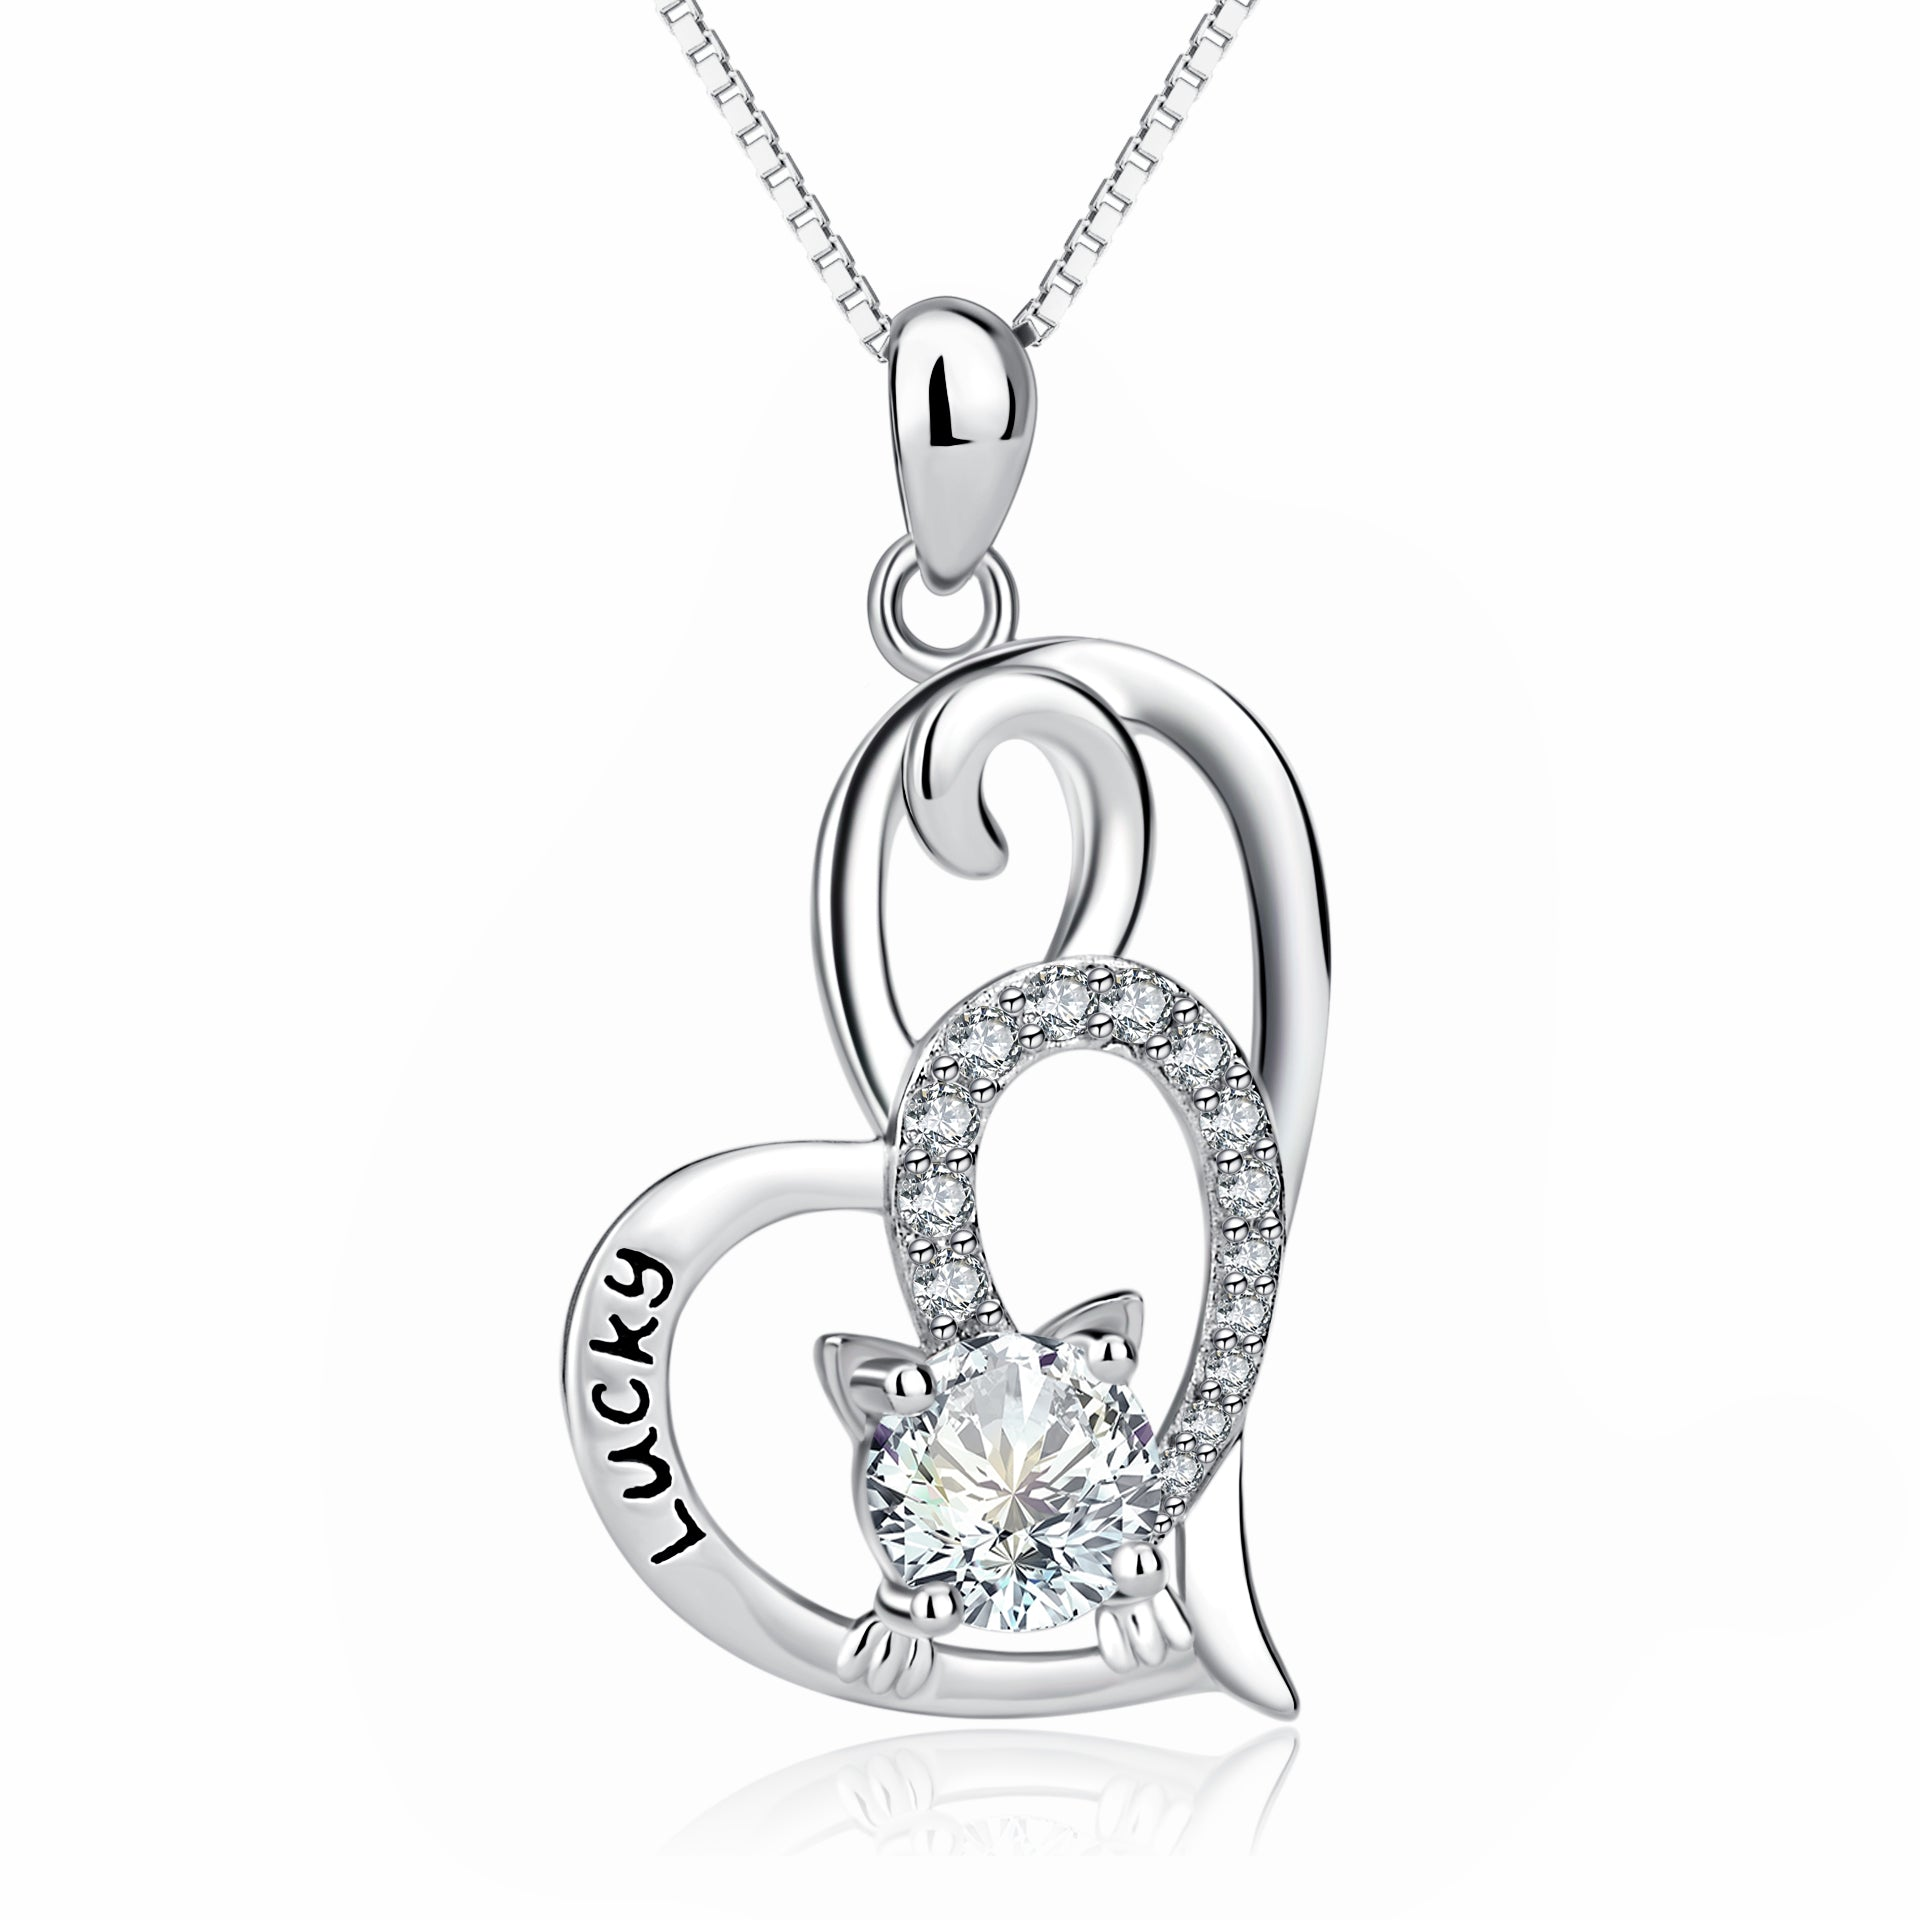 Good Luck Necklace Heart Shape Beautiful Crystal Silver Necklace Jewelry